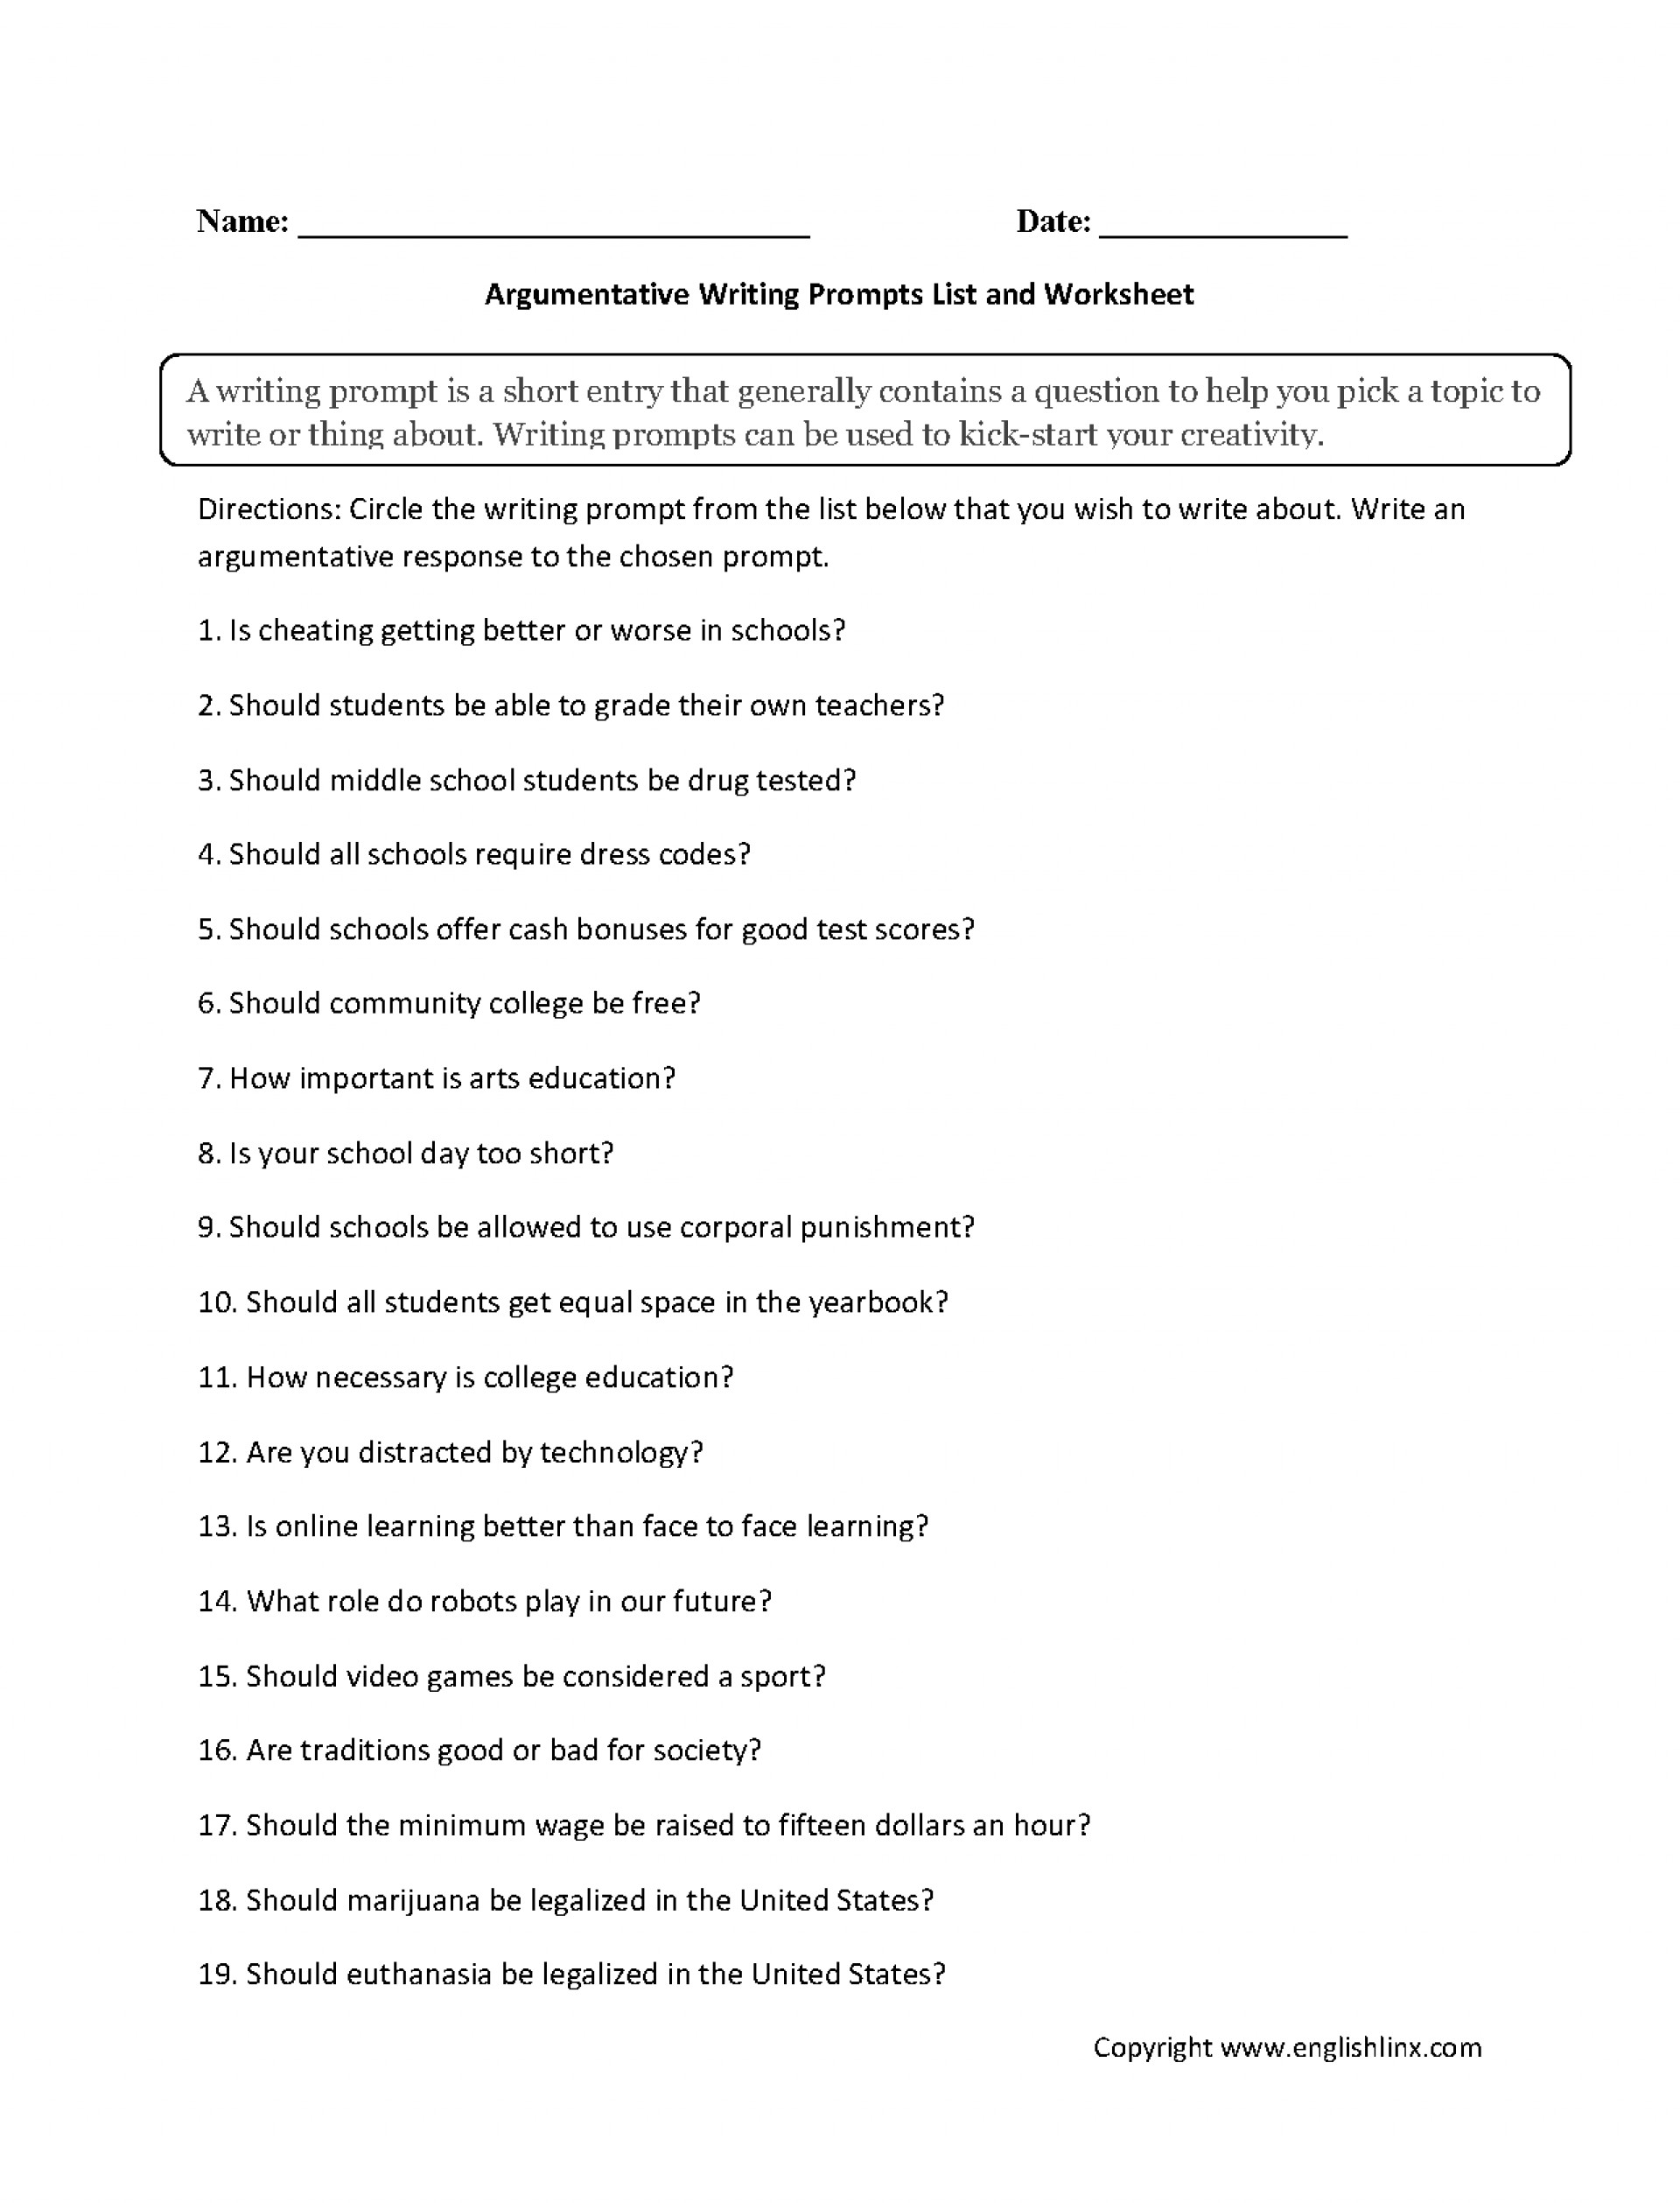 004 Essay Example Argumentative Writing Prompts List Worksheet Amazing Topic Topics For High School Pdf About Classical Music Middle 1920